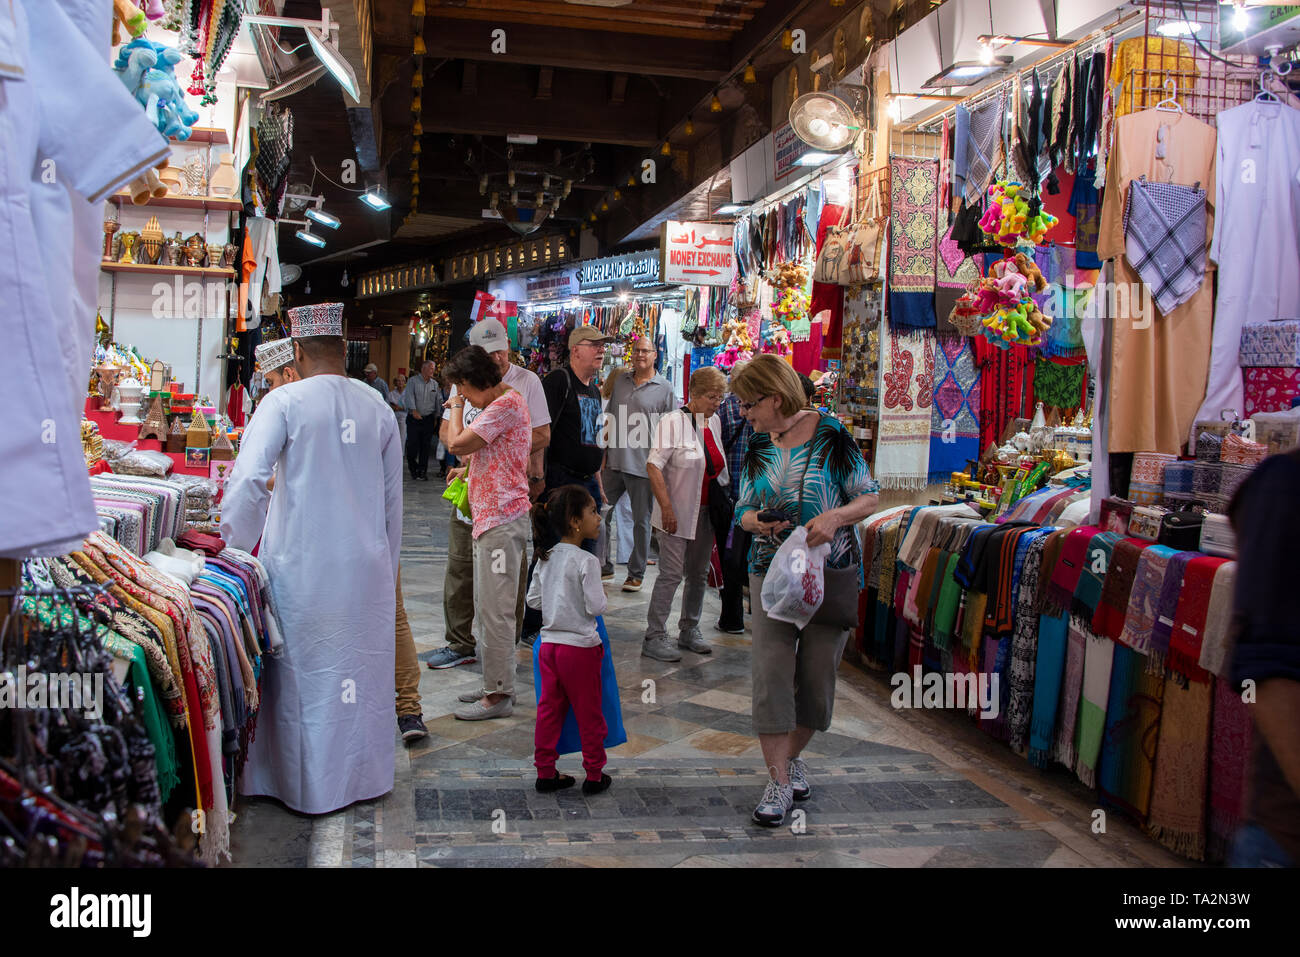 Muttrah Souk Stock Photos & Muttrah Souk Stock Images - Alamy